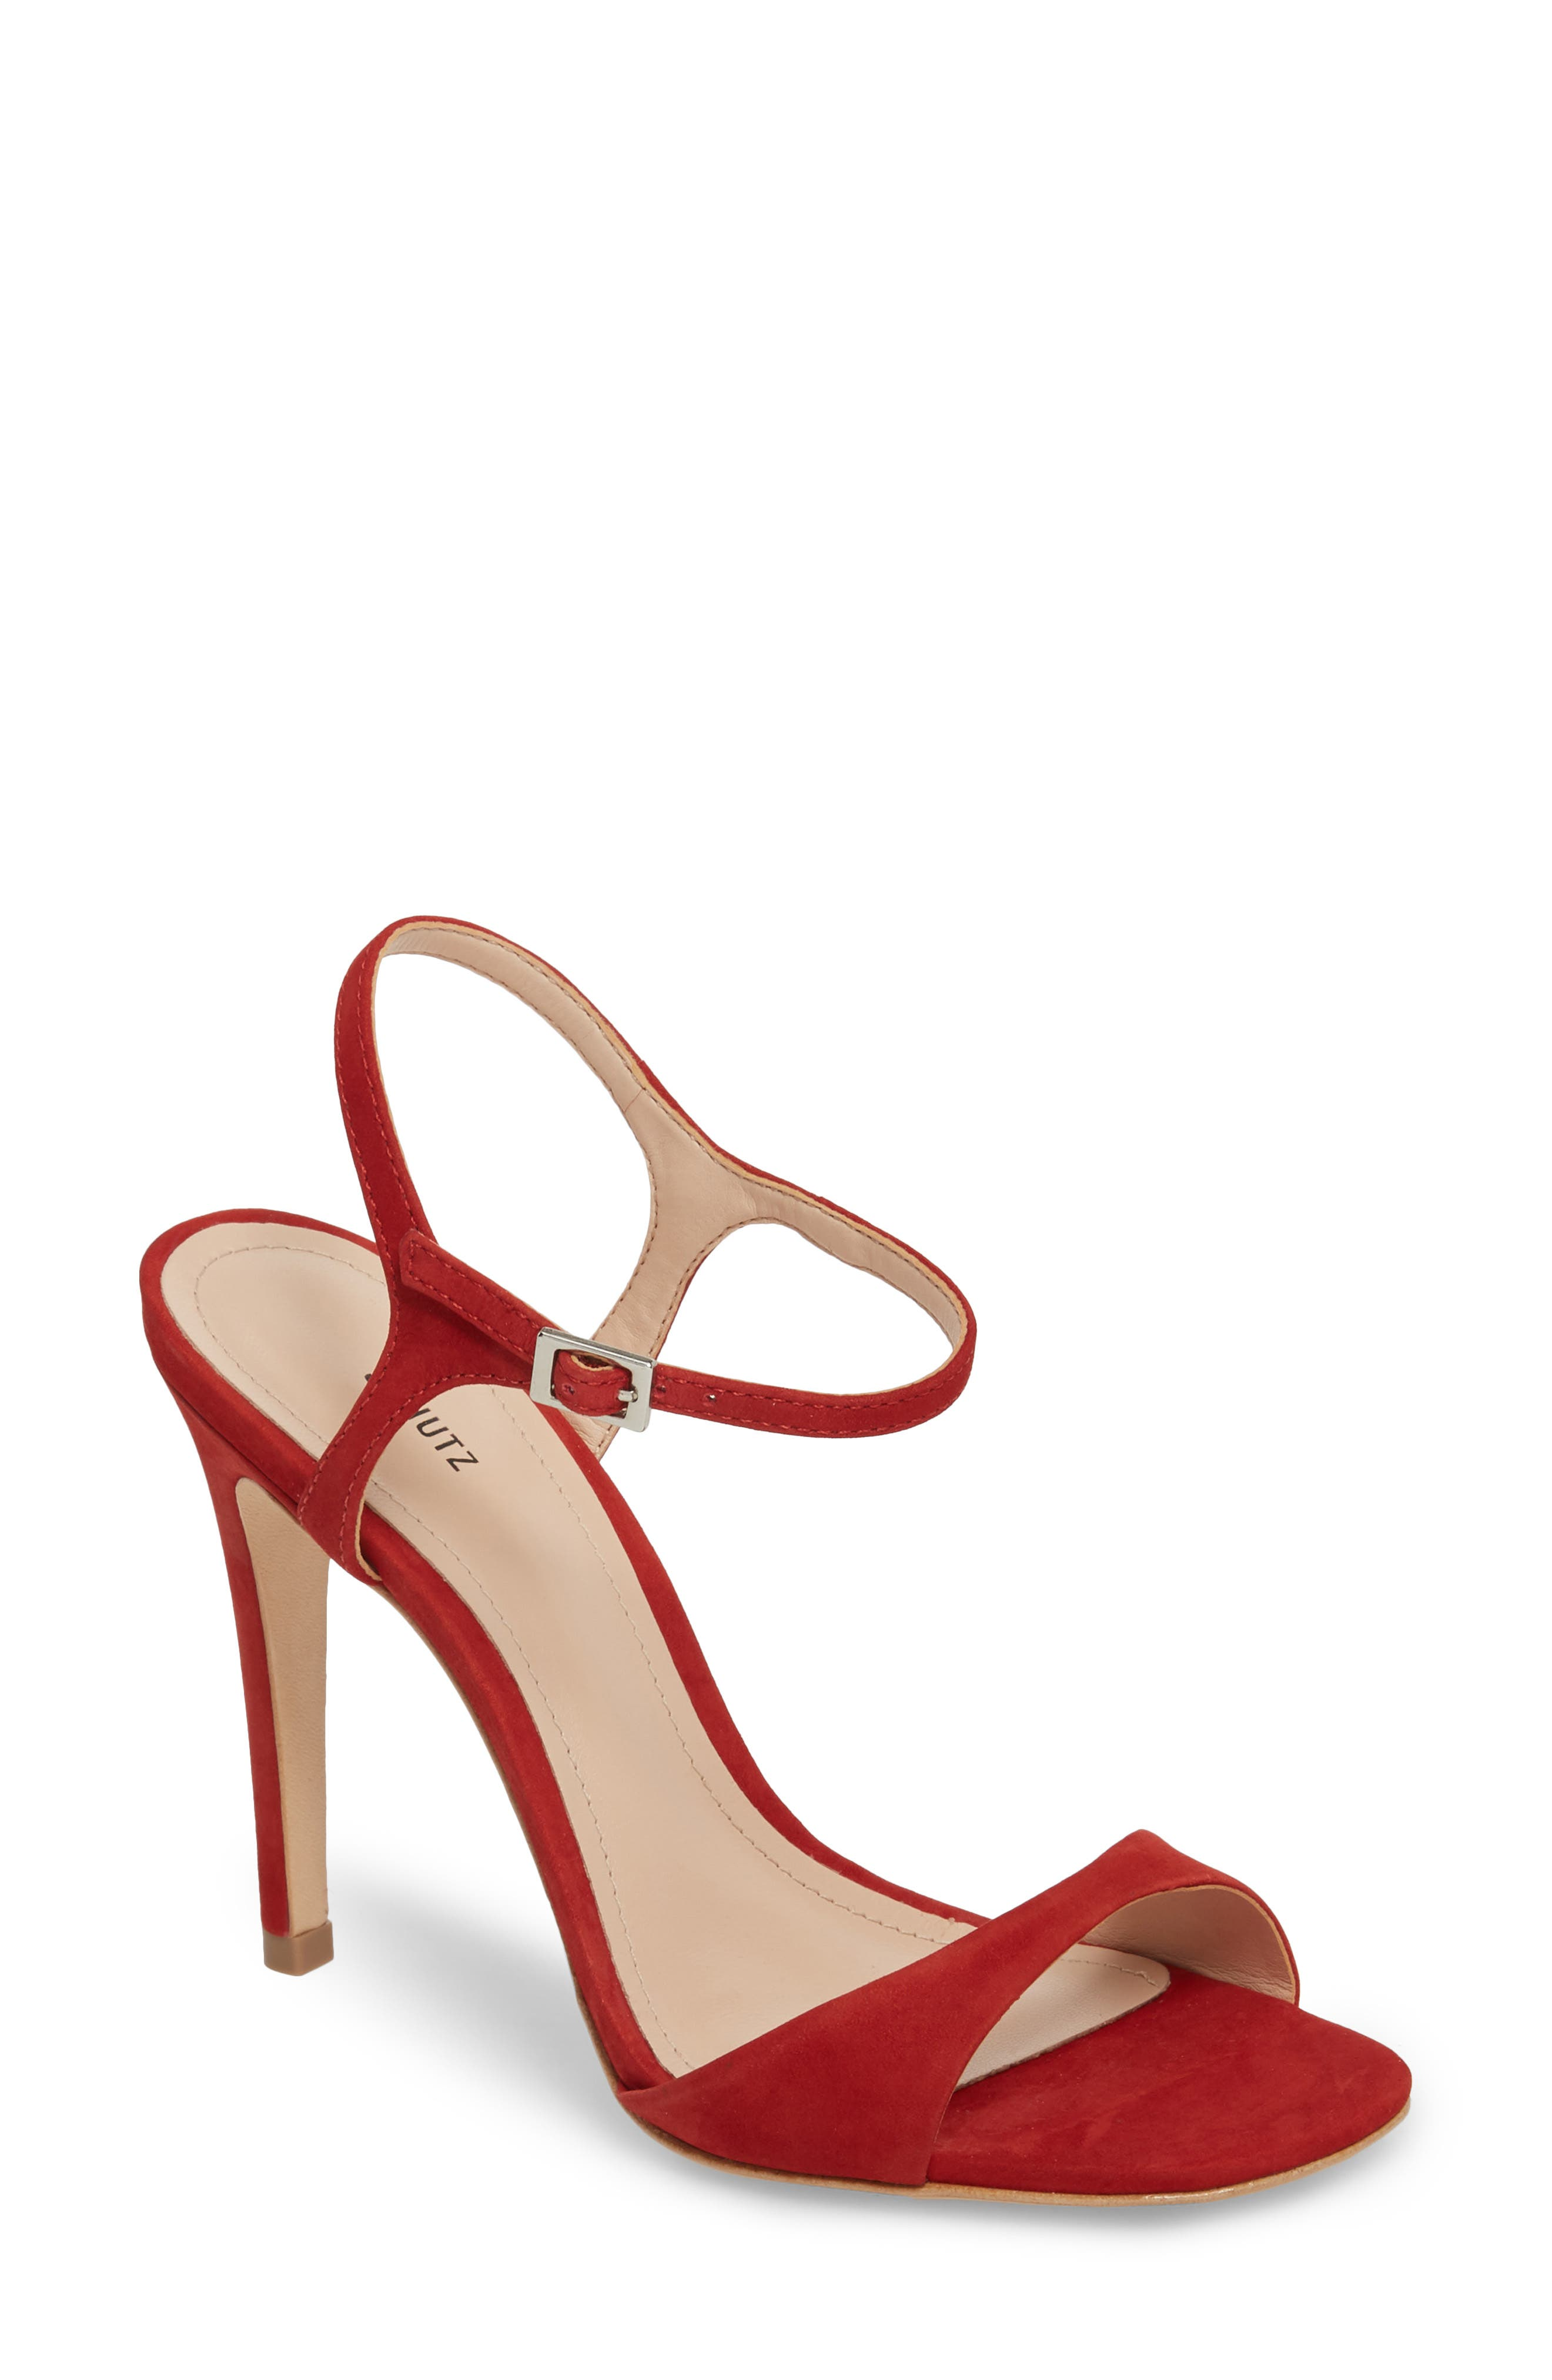 Jade Ankle Strap Sandal,                             Main thumbnail 1, color,                             Tango Red